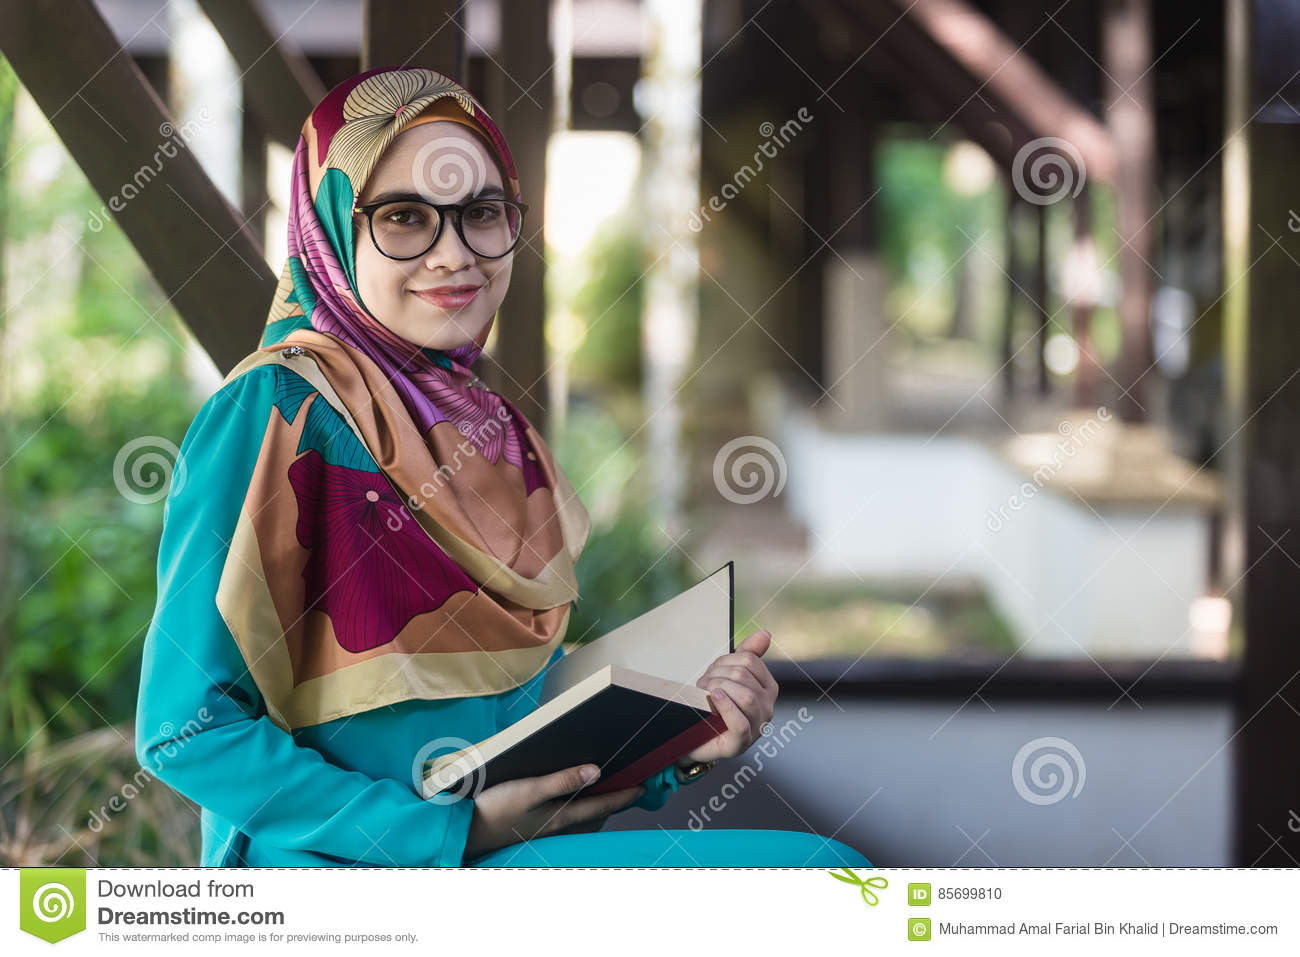 Muslim girl with glasses and veil holding opened book at park a muslim girl with